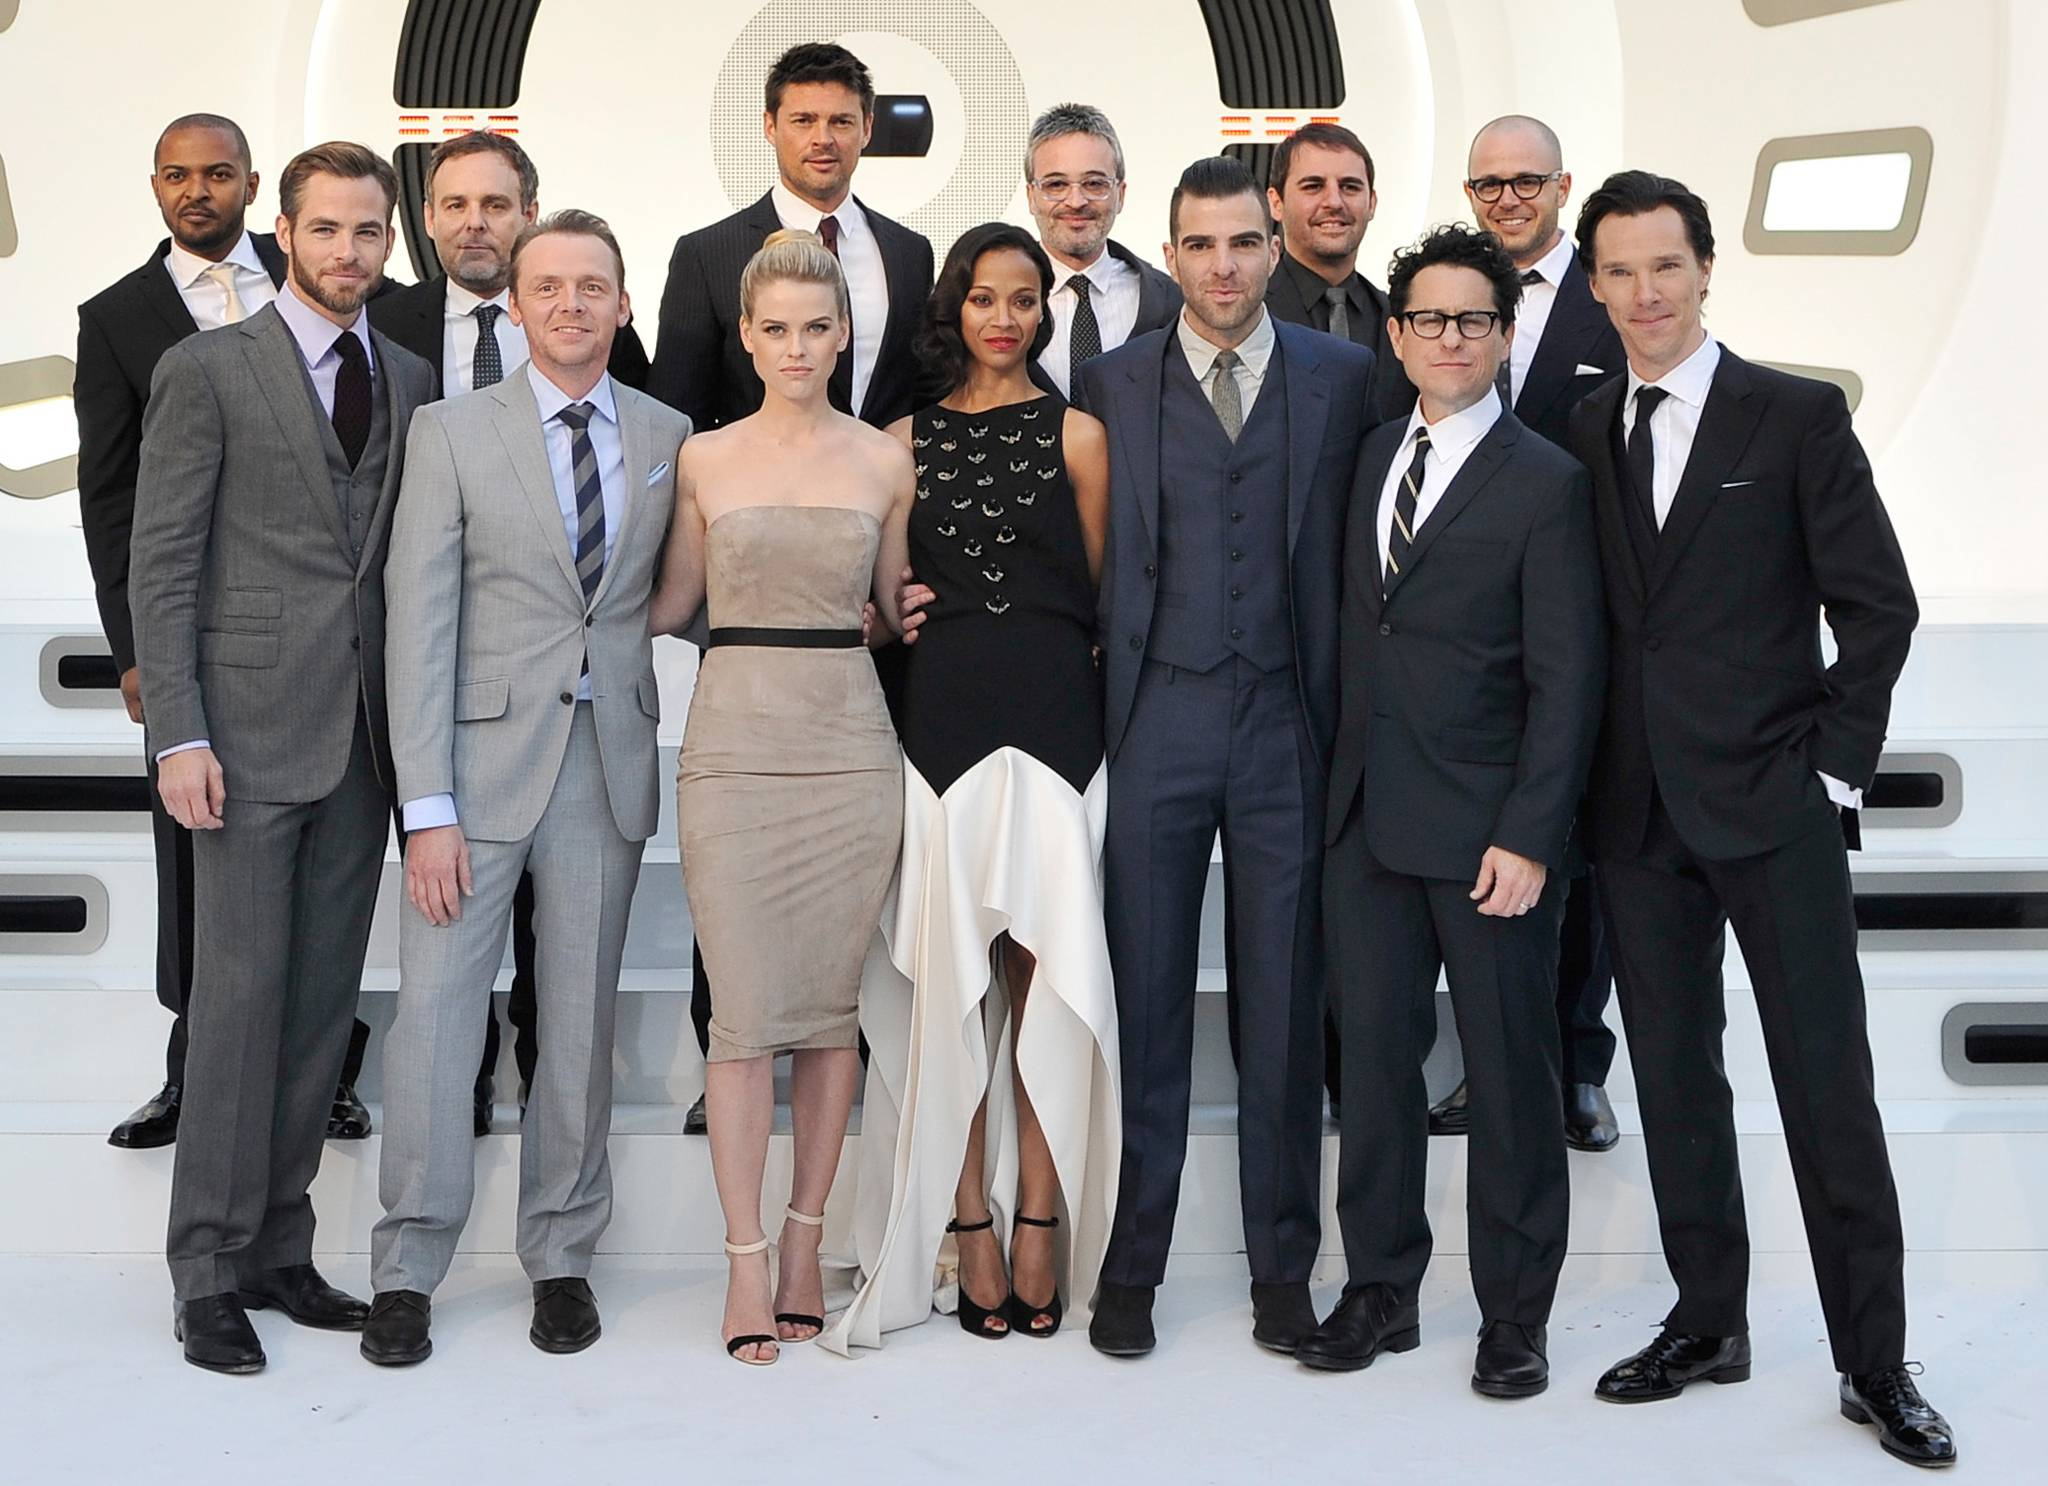 Star Trek Into Darkness premiere cast